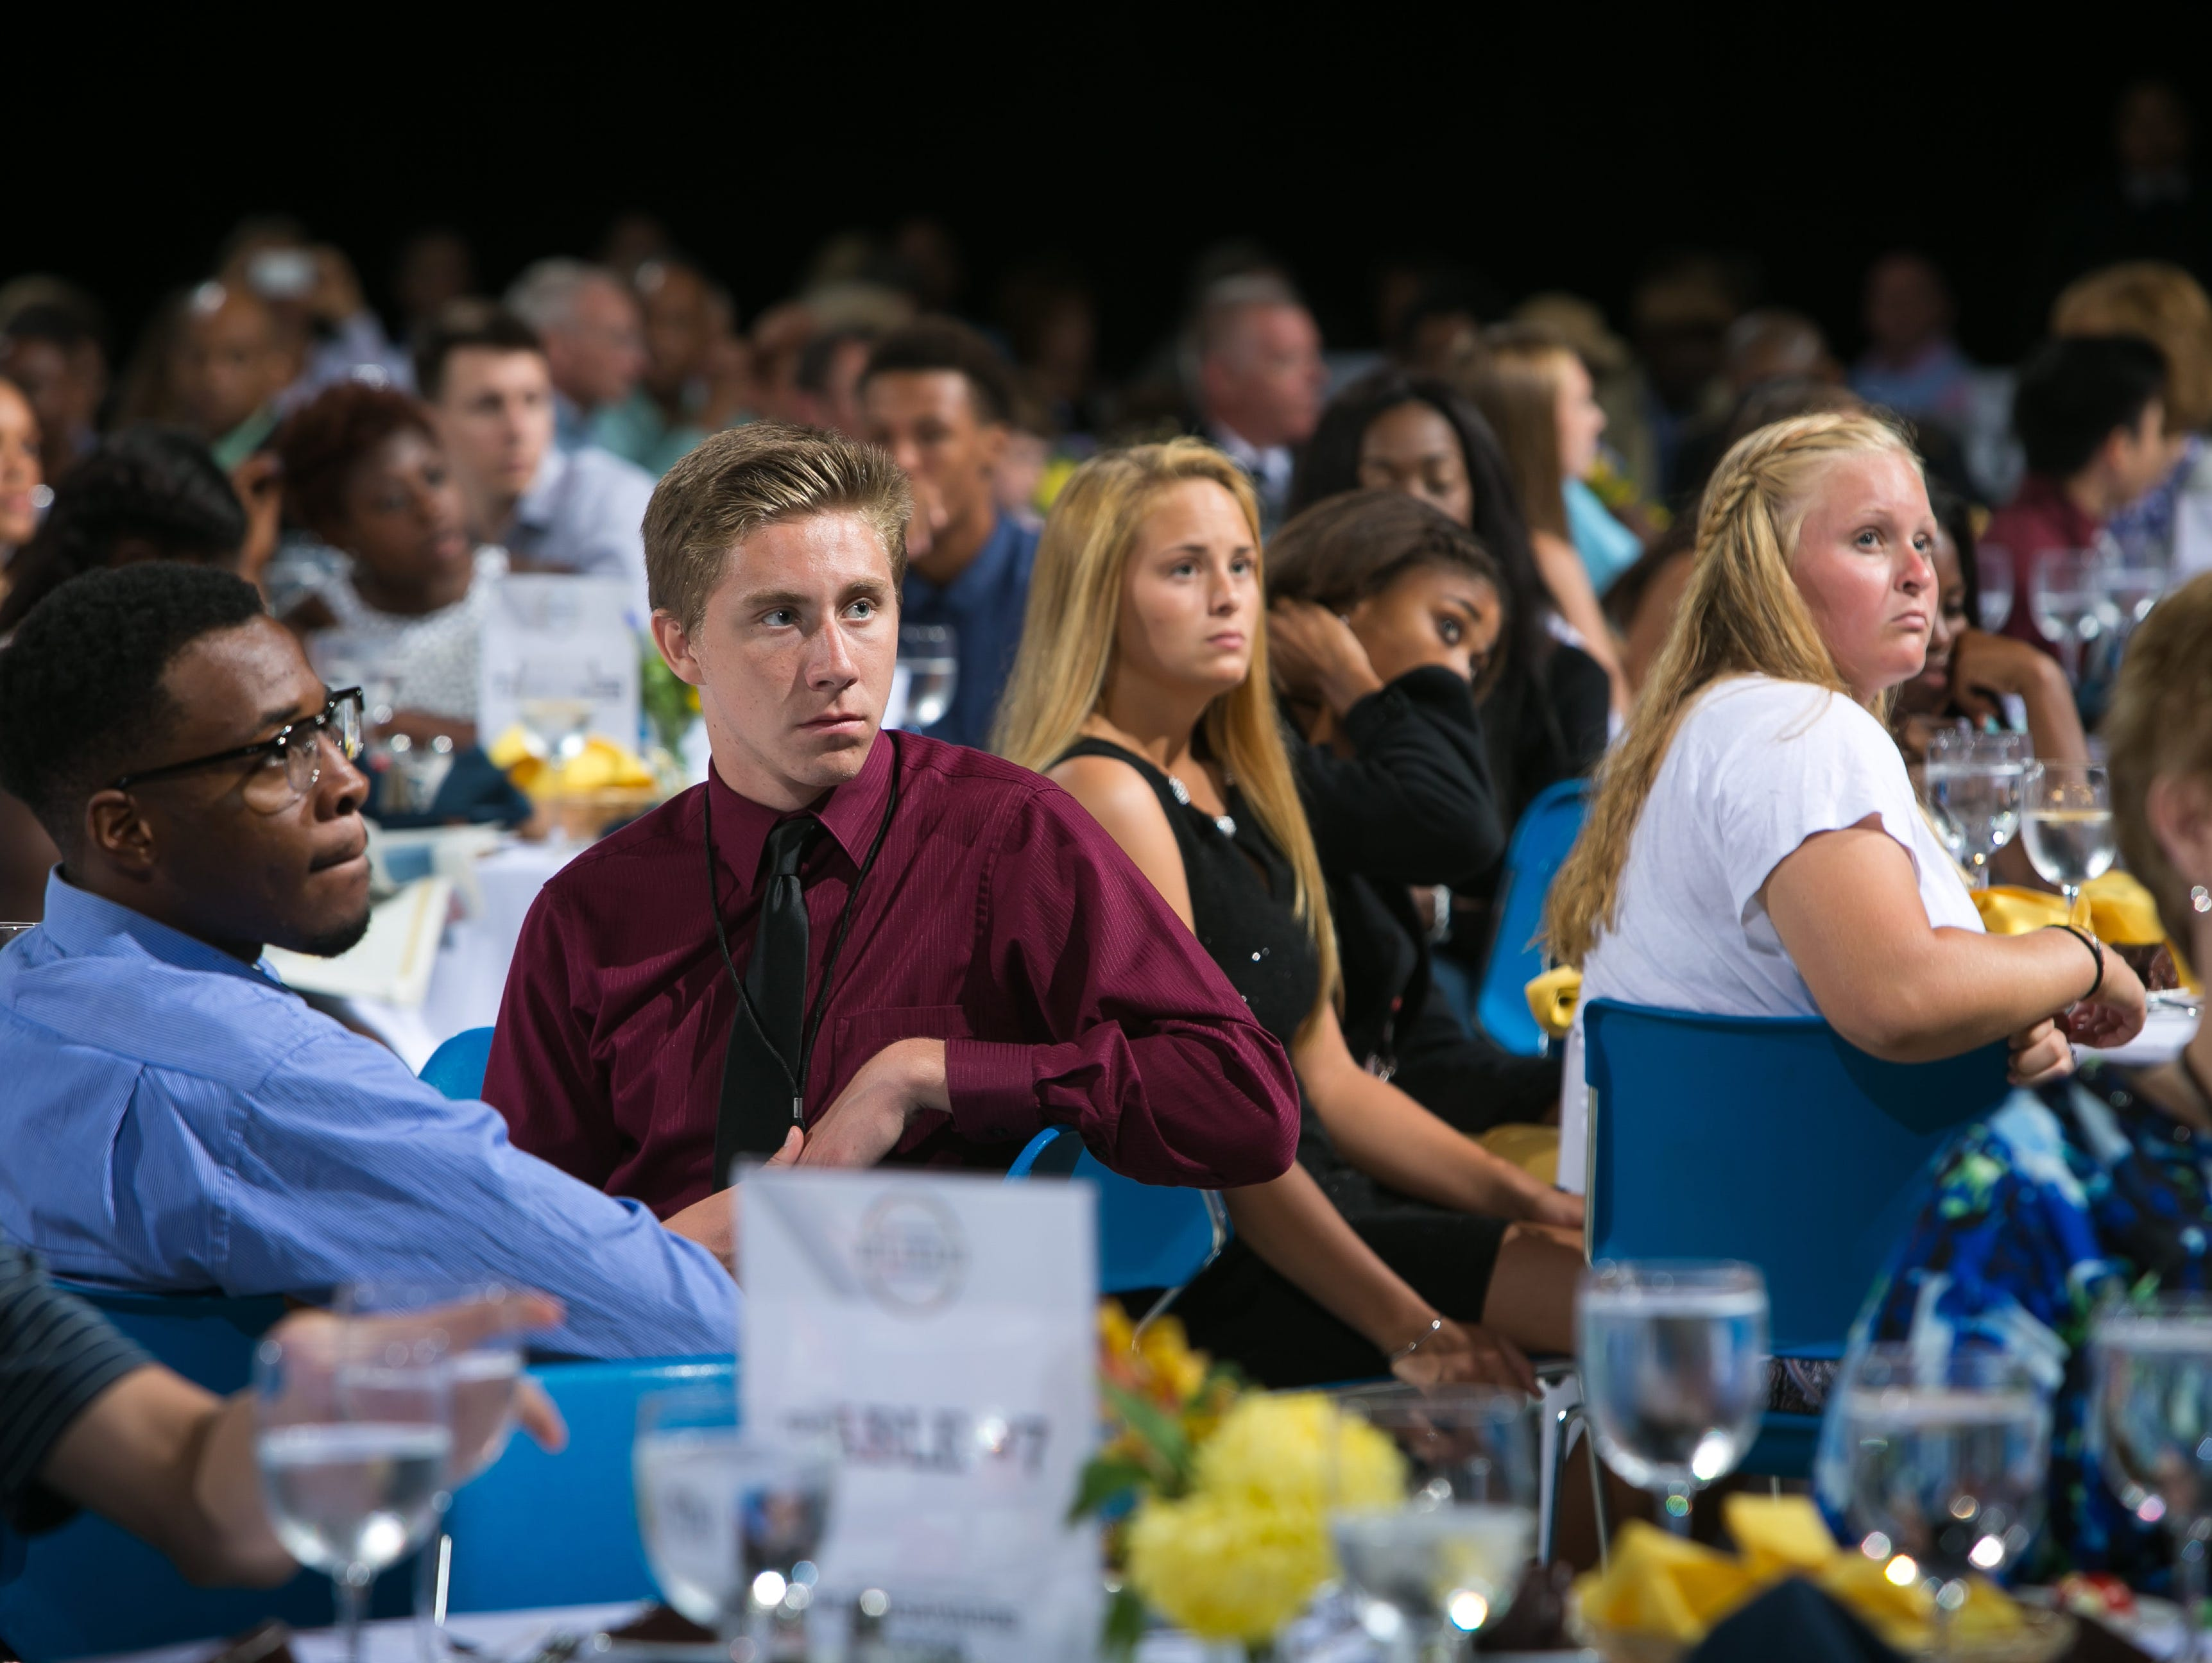 Hundreds attend the first Delaware Sports Awards held at the Bob Carpenter Center.